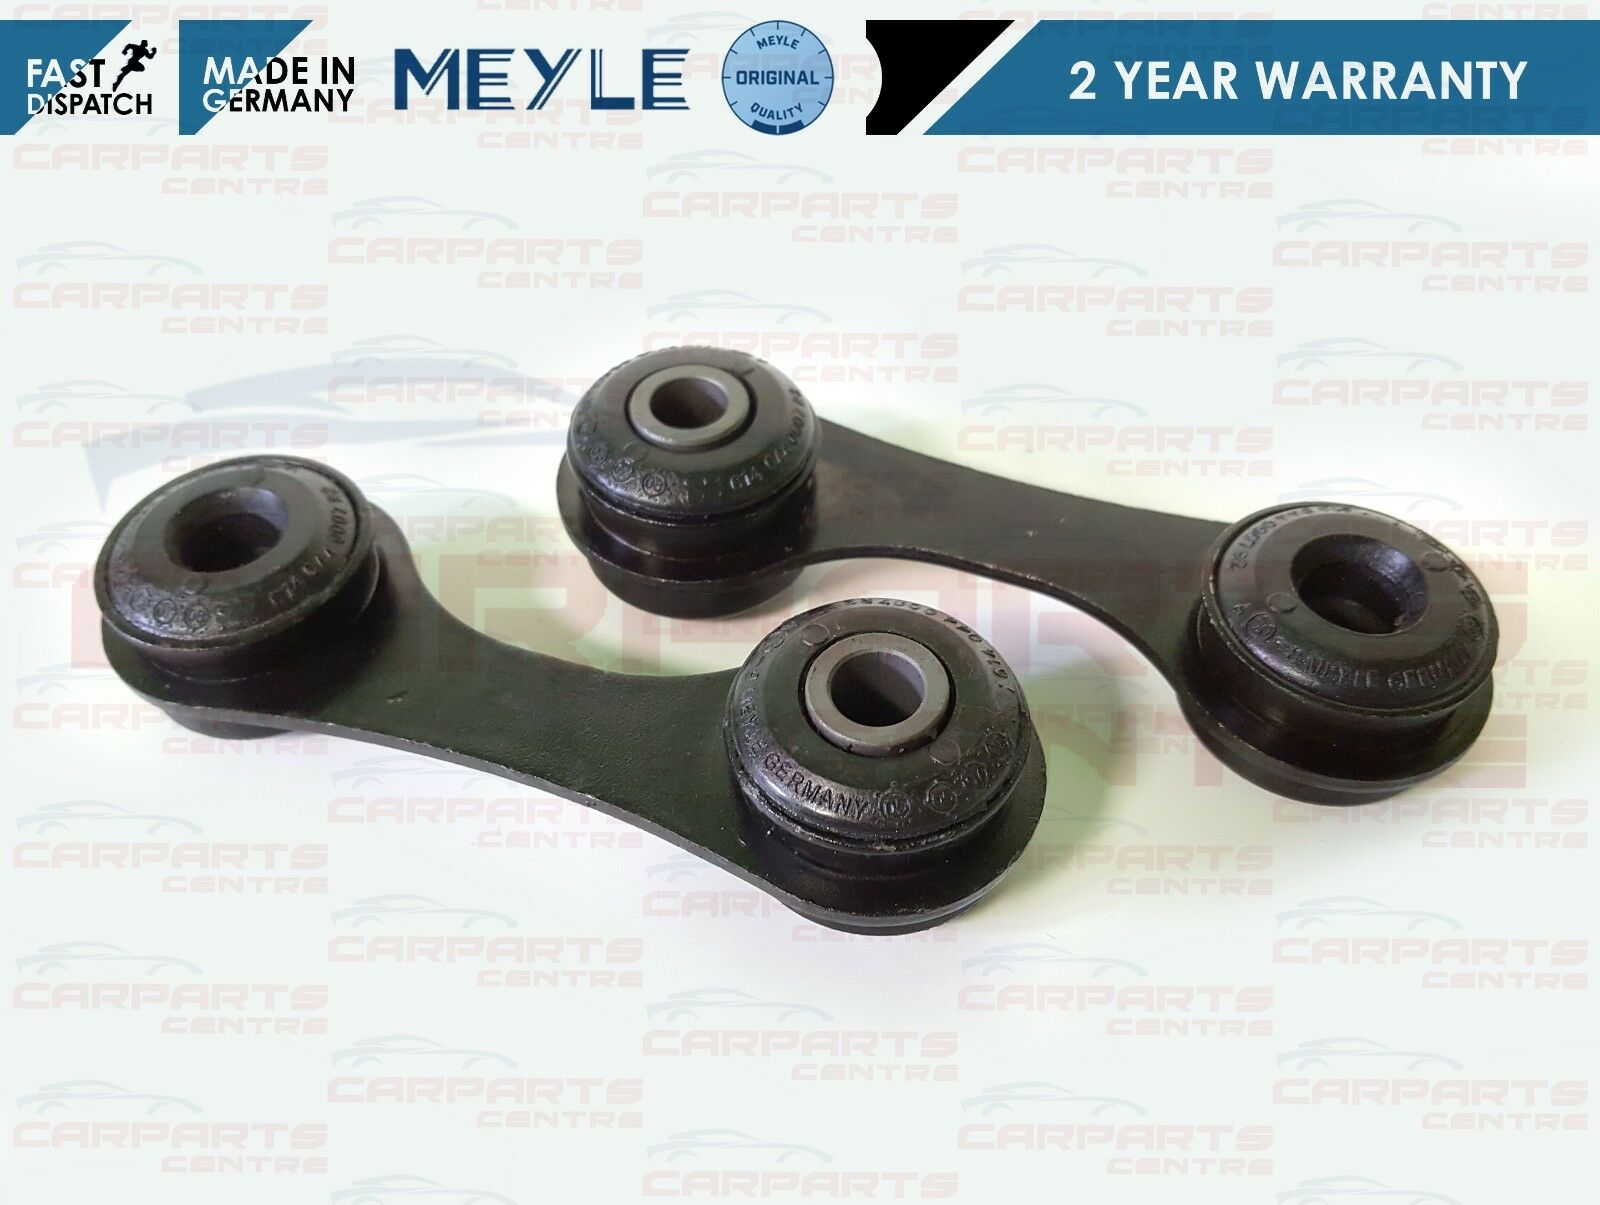 Opel Signum Vauxhall 1.8 1.9 2.0 2.2 CDTi Front Right Wishbone Control Arm New